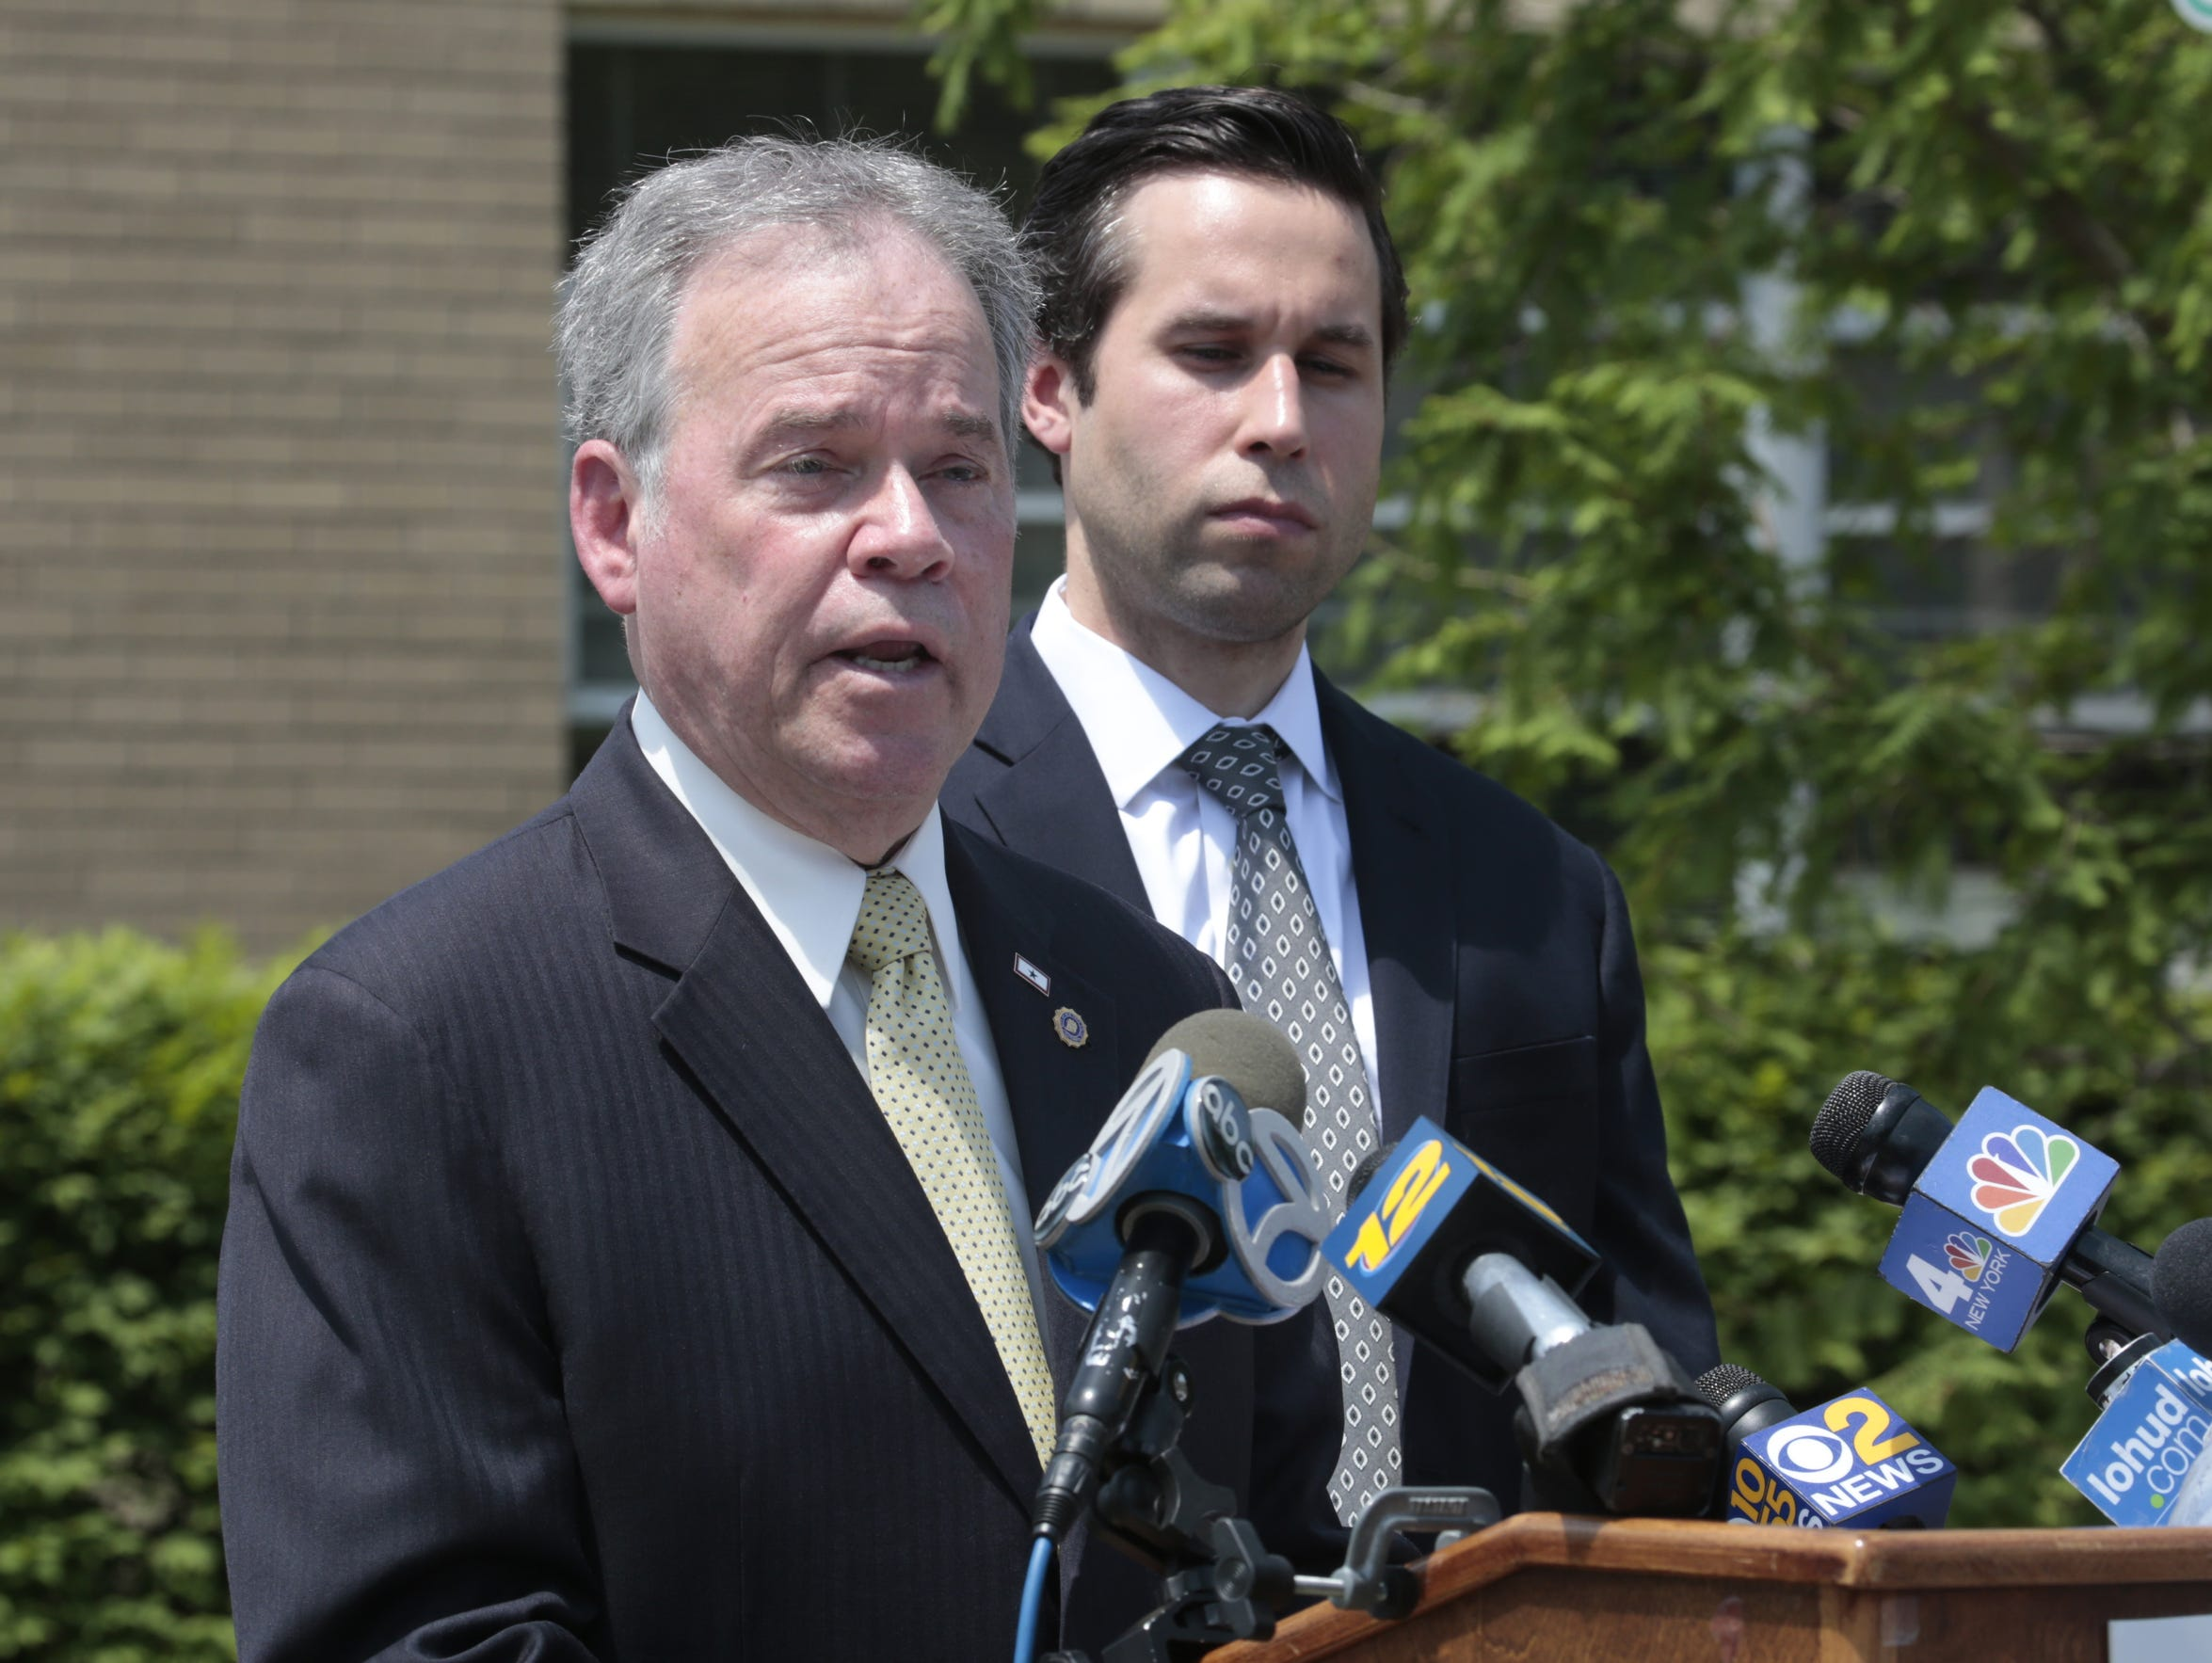 Rockland County Executive Ed Day and Assemblyman Ken